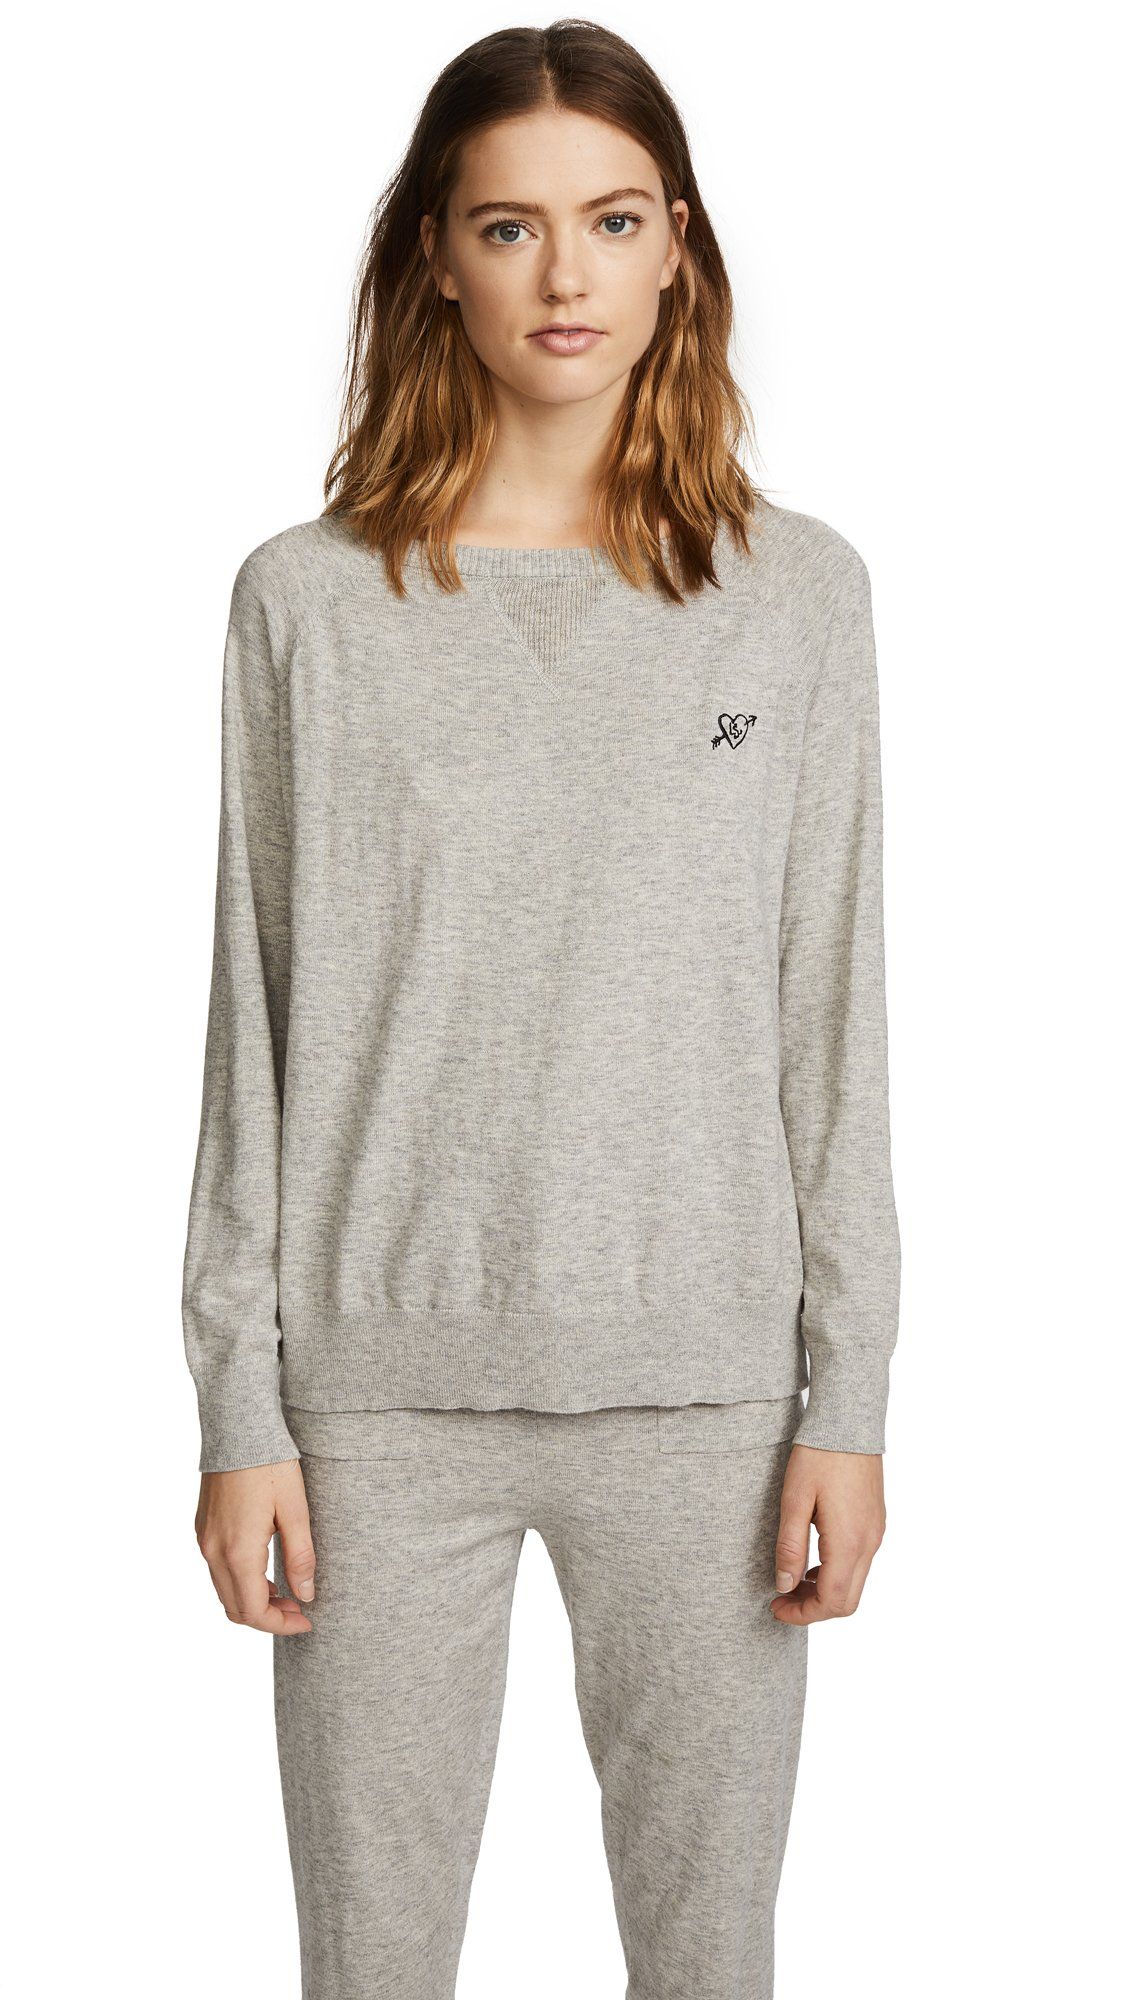 LOVE Stories Women's Jerry Sweater, Grey, Small